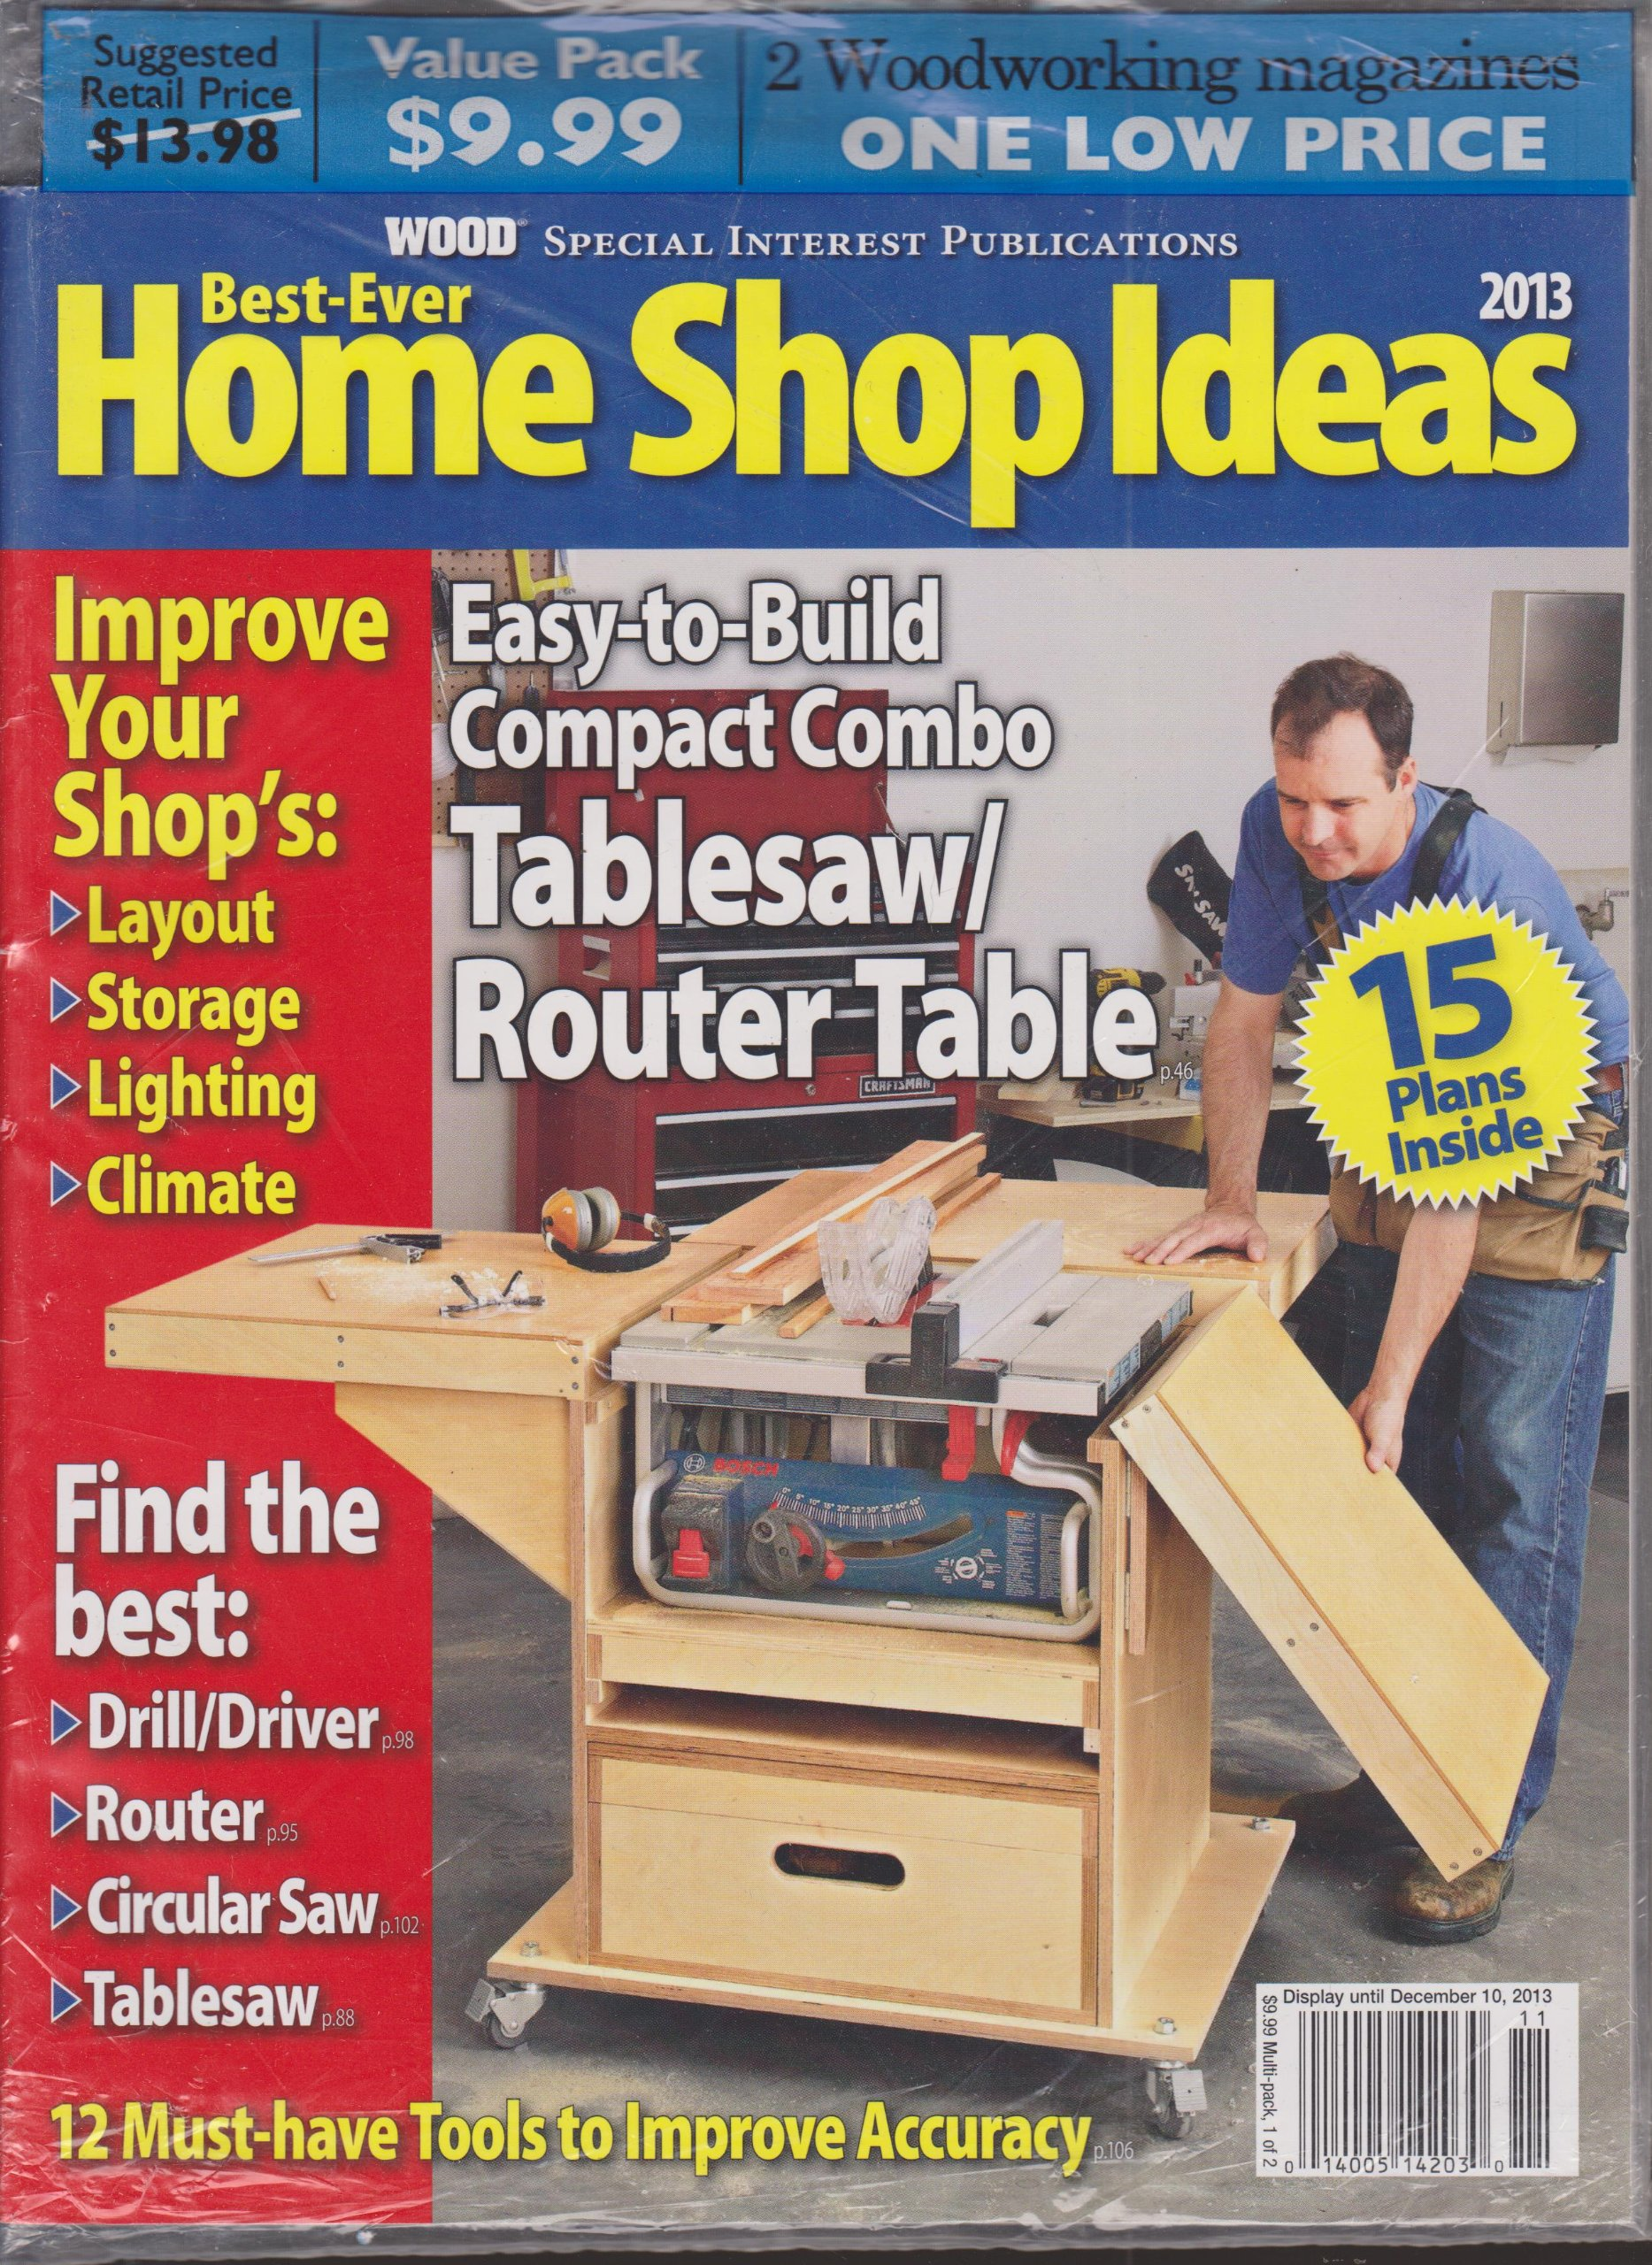 Read Online Best Ever Home Shop Ideas 2013 & Better Homes and Gardens Wood Magazine November 2013 2 Pack ebook